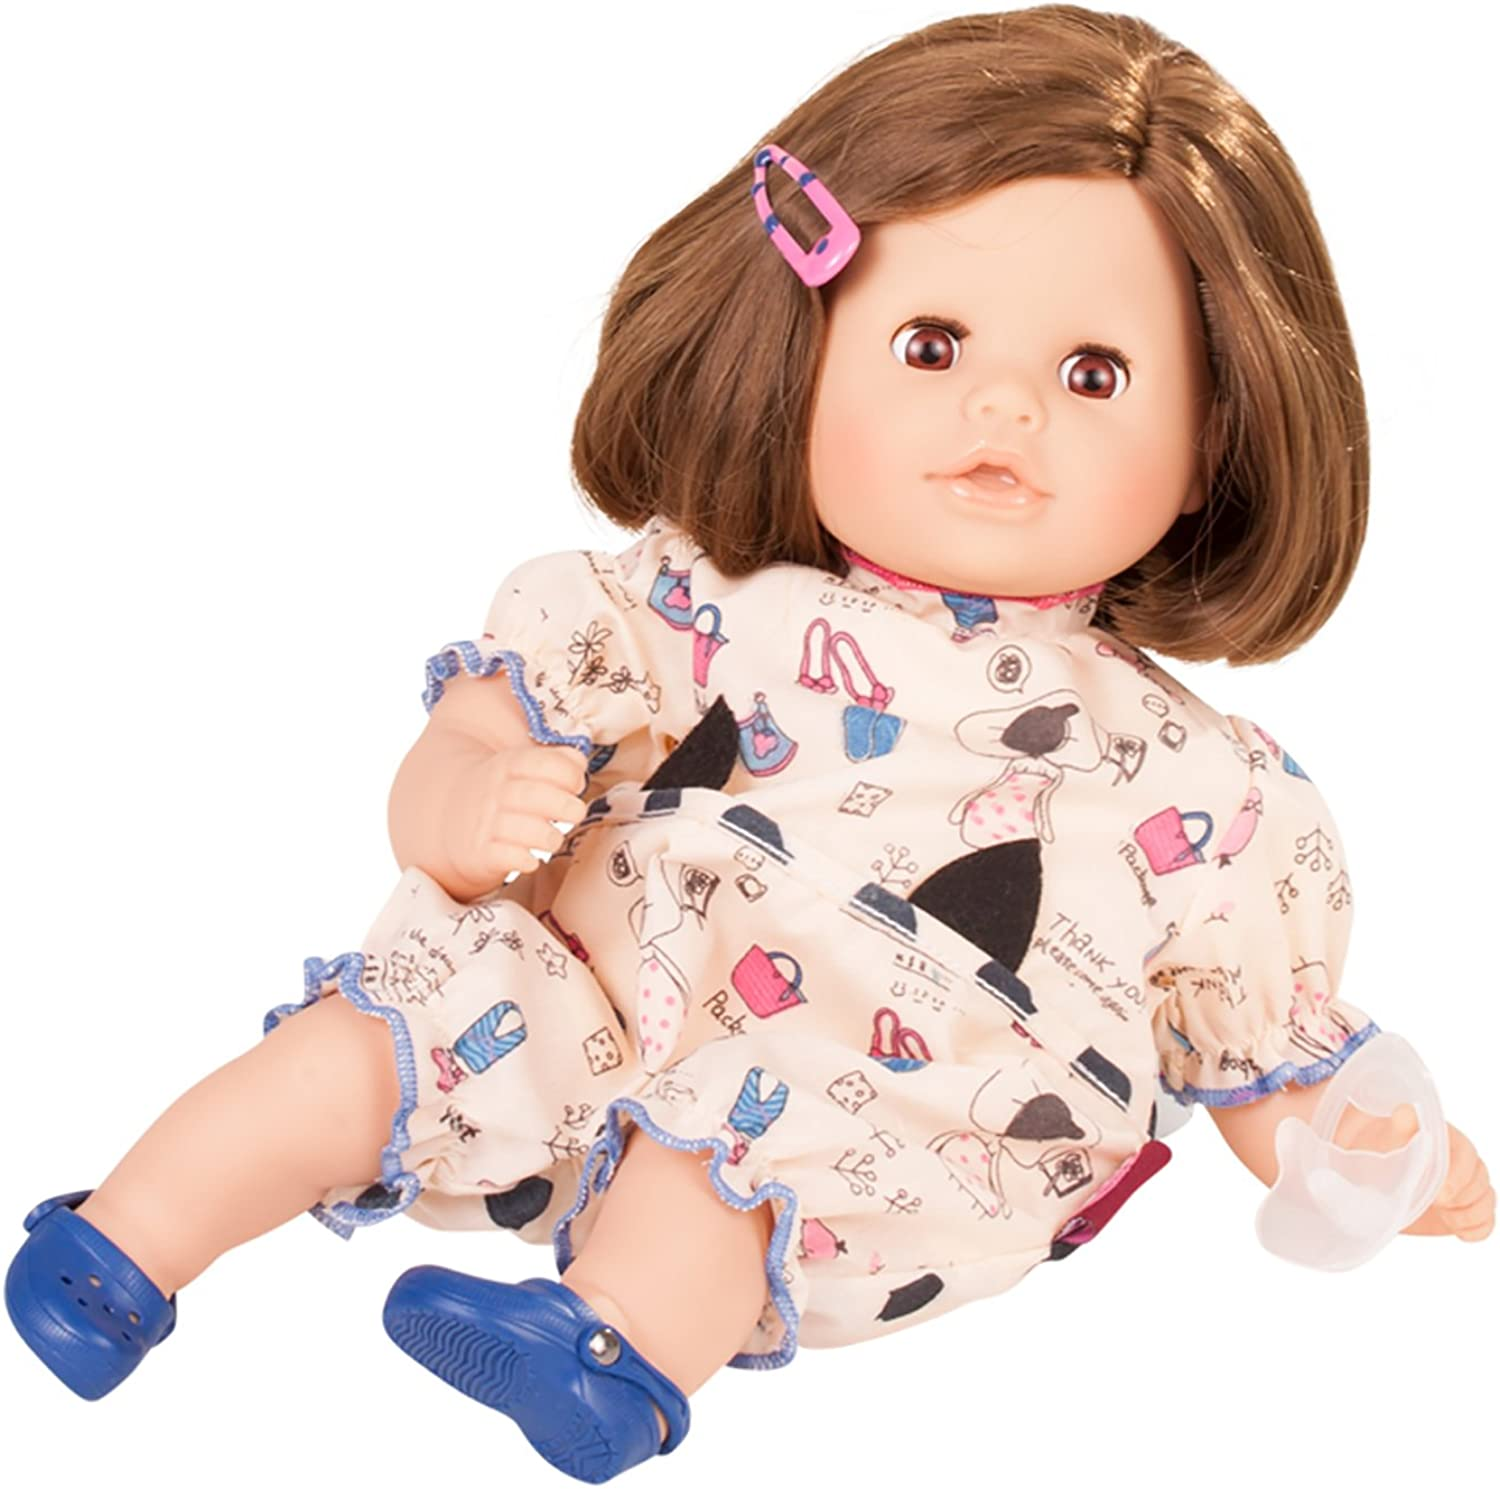 Gotz 1716062 Cosy Aquini Wonderland Doll  33 cm Bathing Baby Doll With Brown Hair And Brown SleepingEyes  Suitable Agegroup 3+